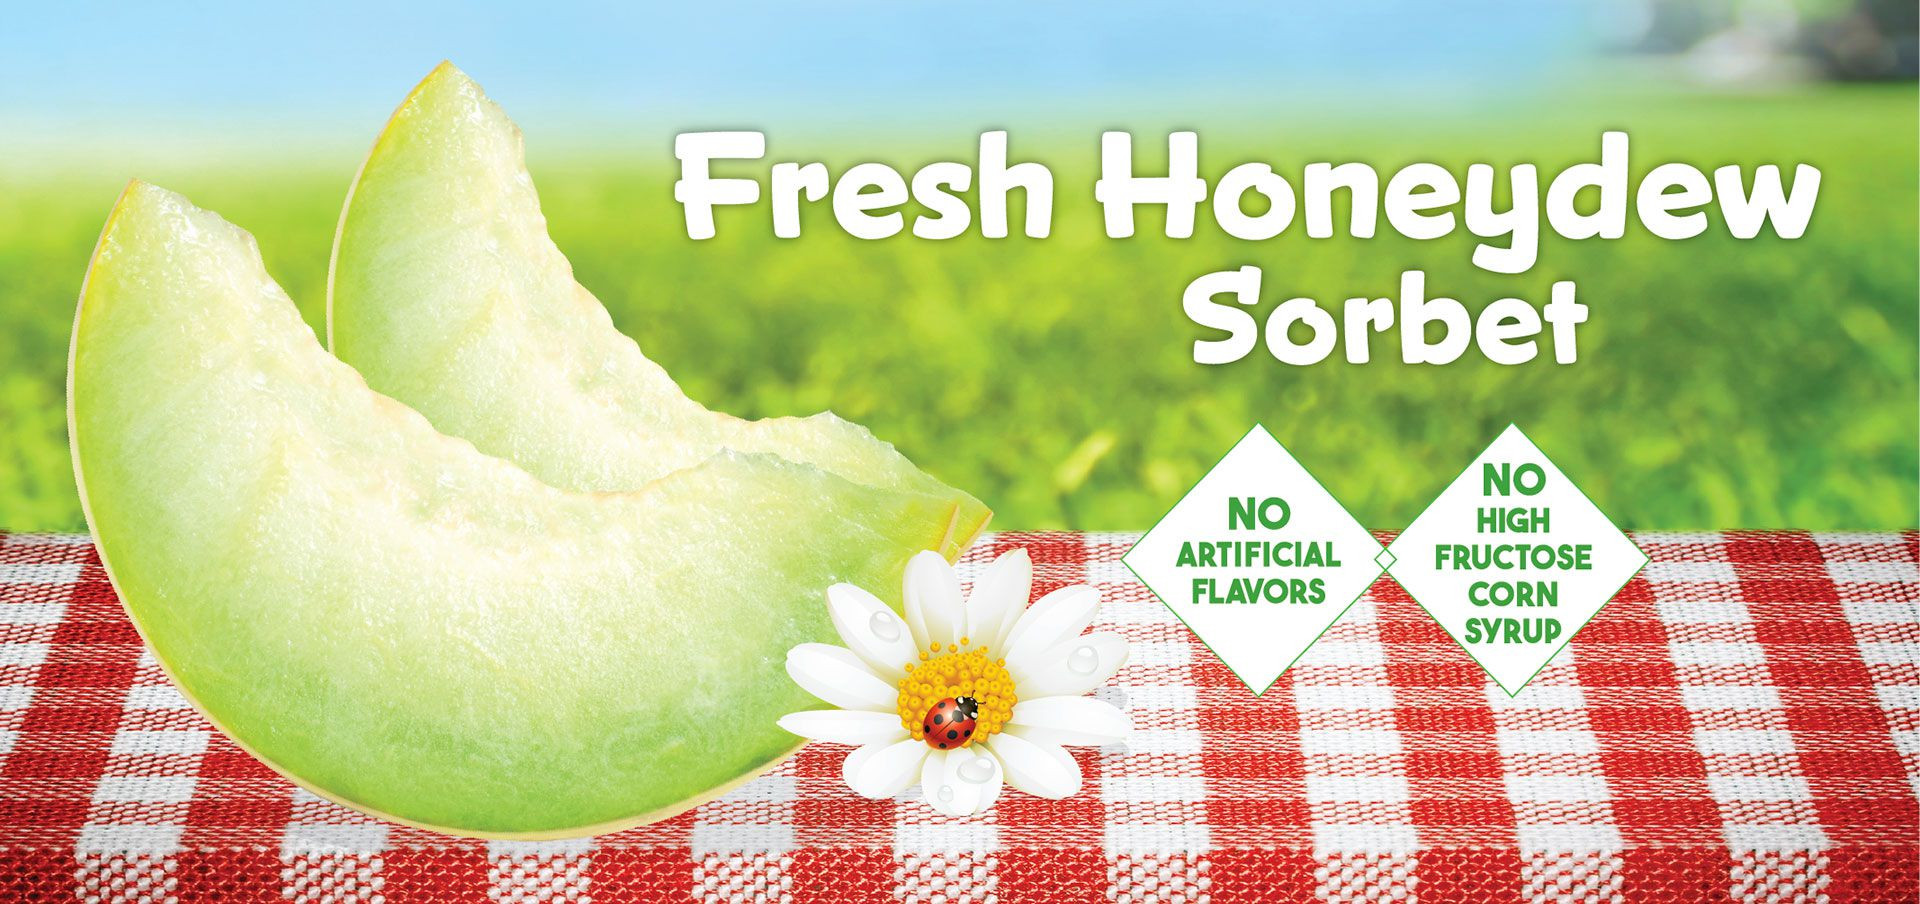 vegan fresh honeydew sorbet label image